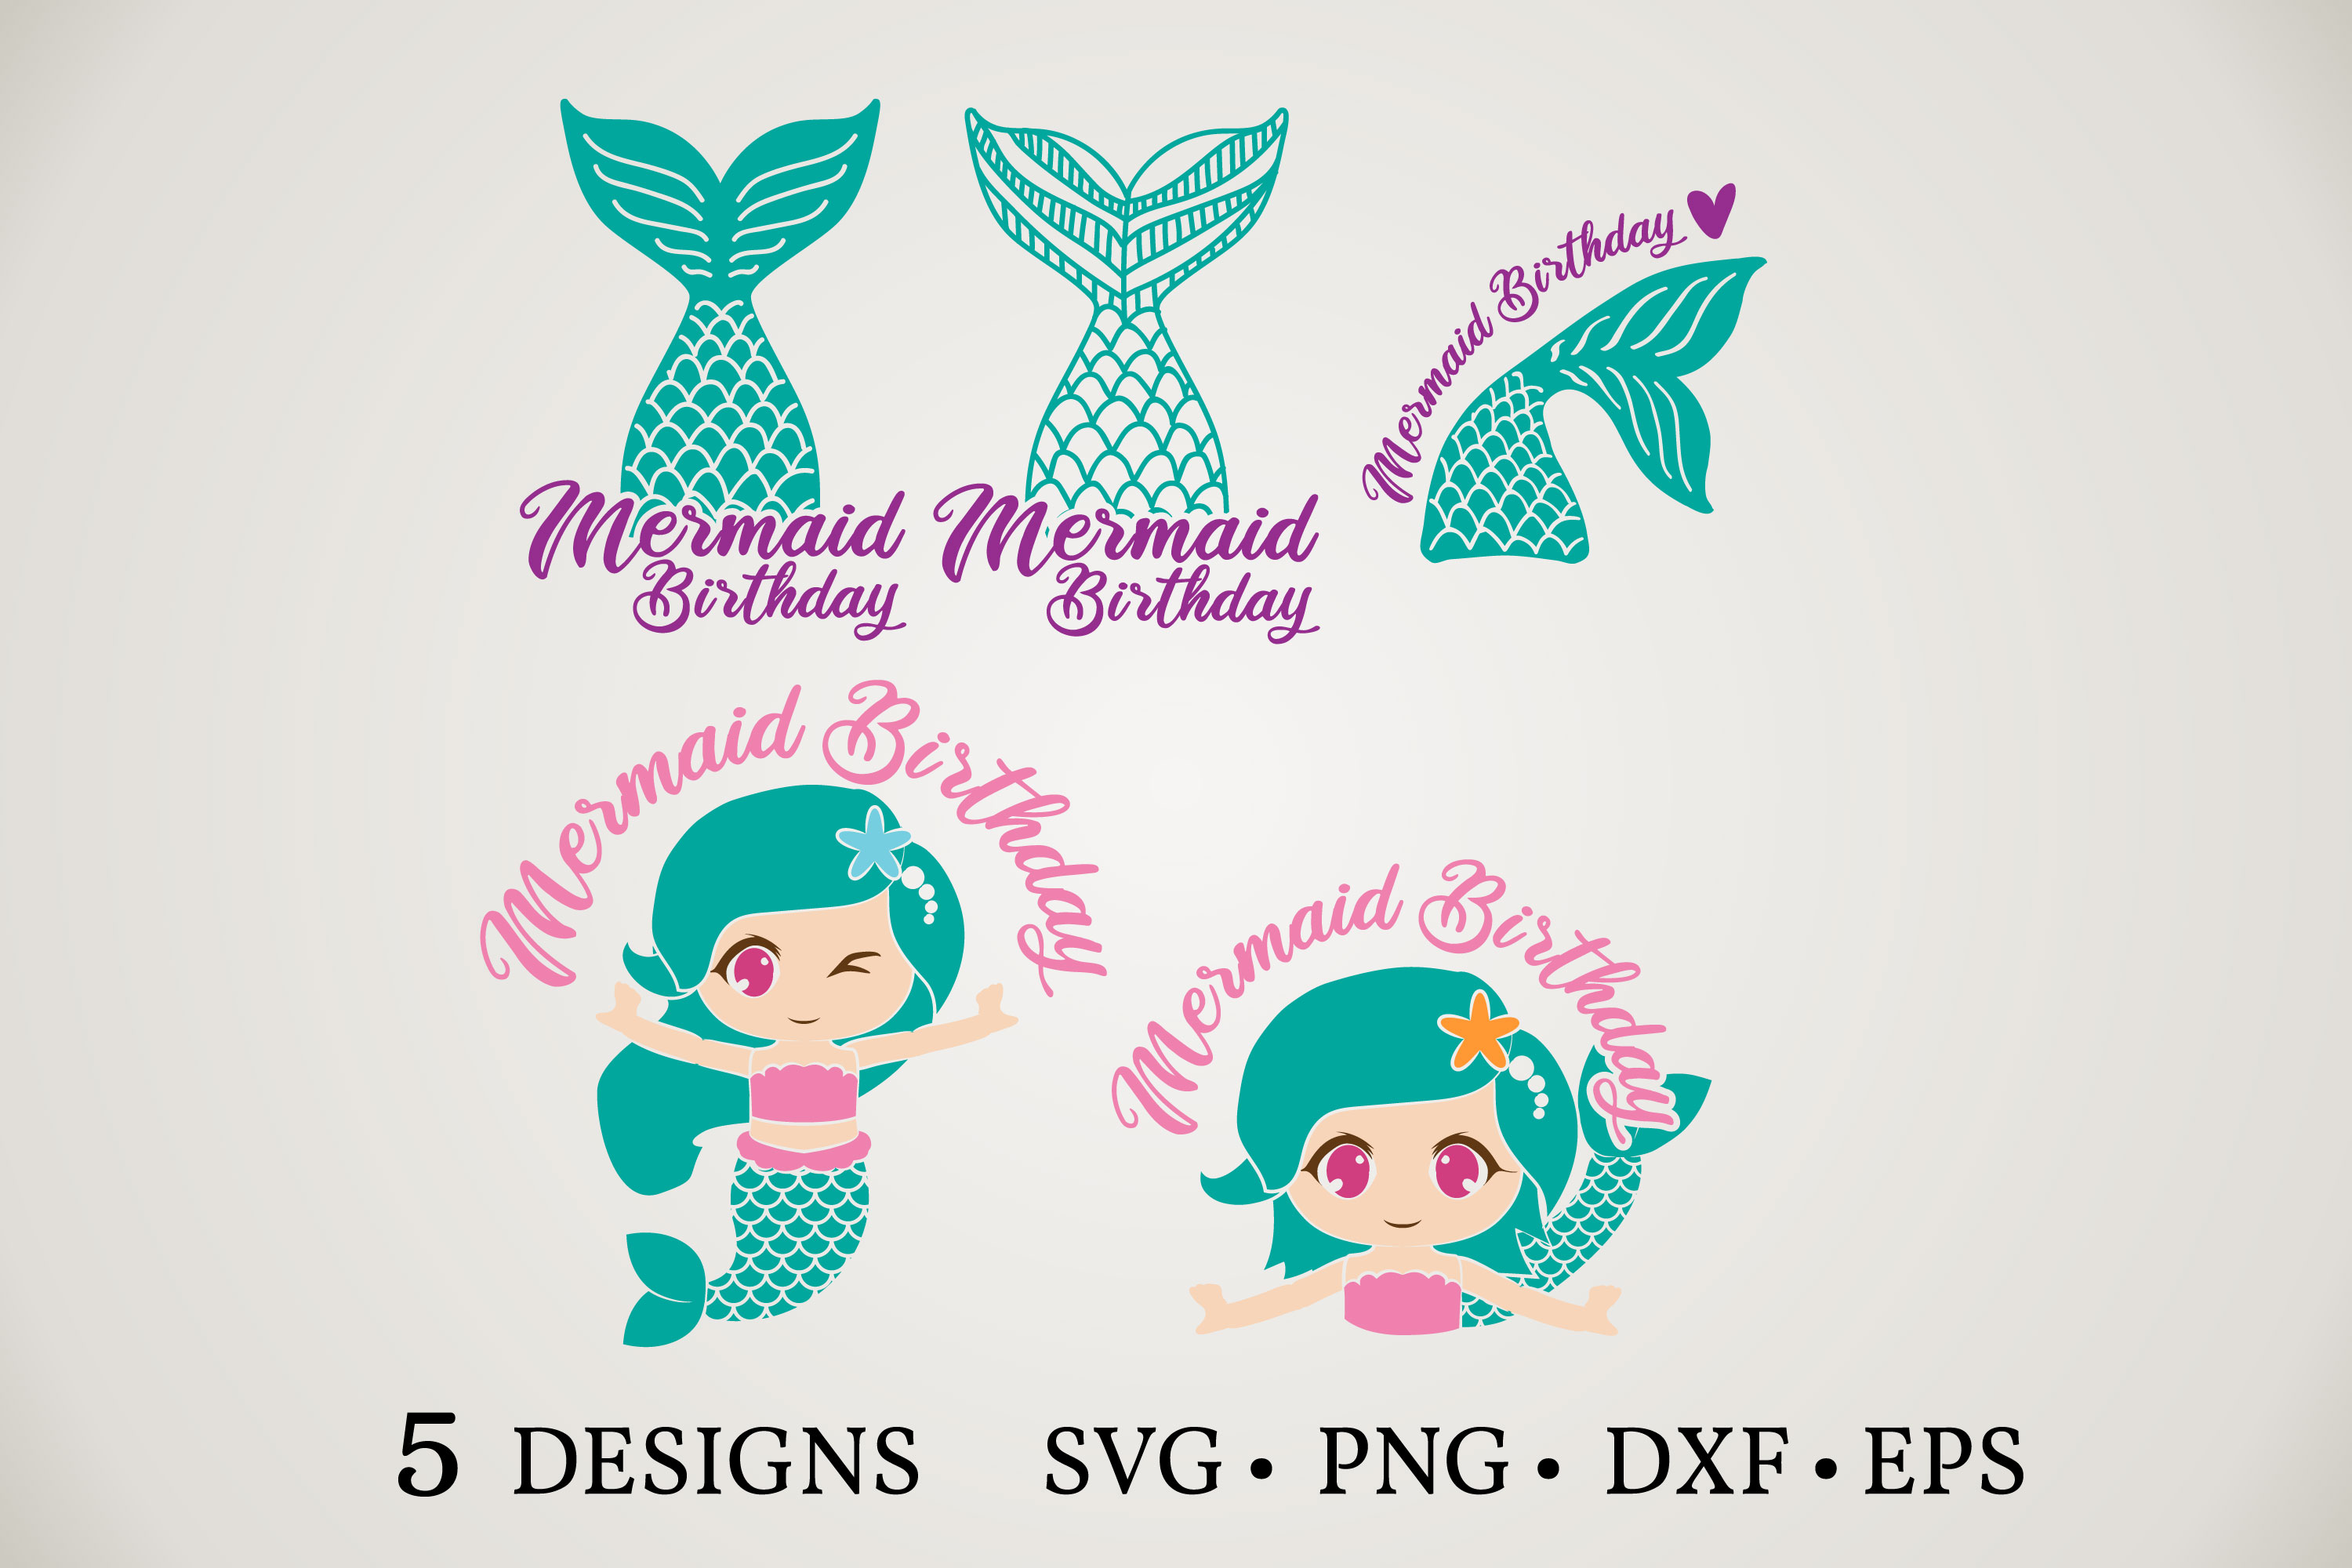 Download Free Mermaid Tail Graphic By Euphoria Design Creative Fabrica for Cricut Explore, Silhouette and other cutting machines.